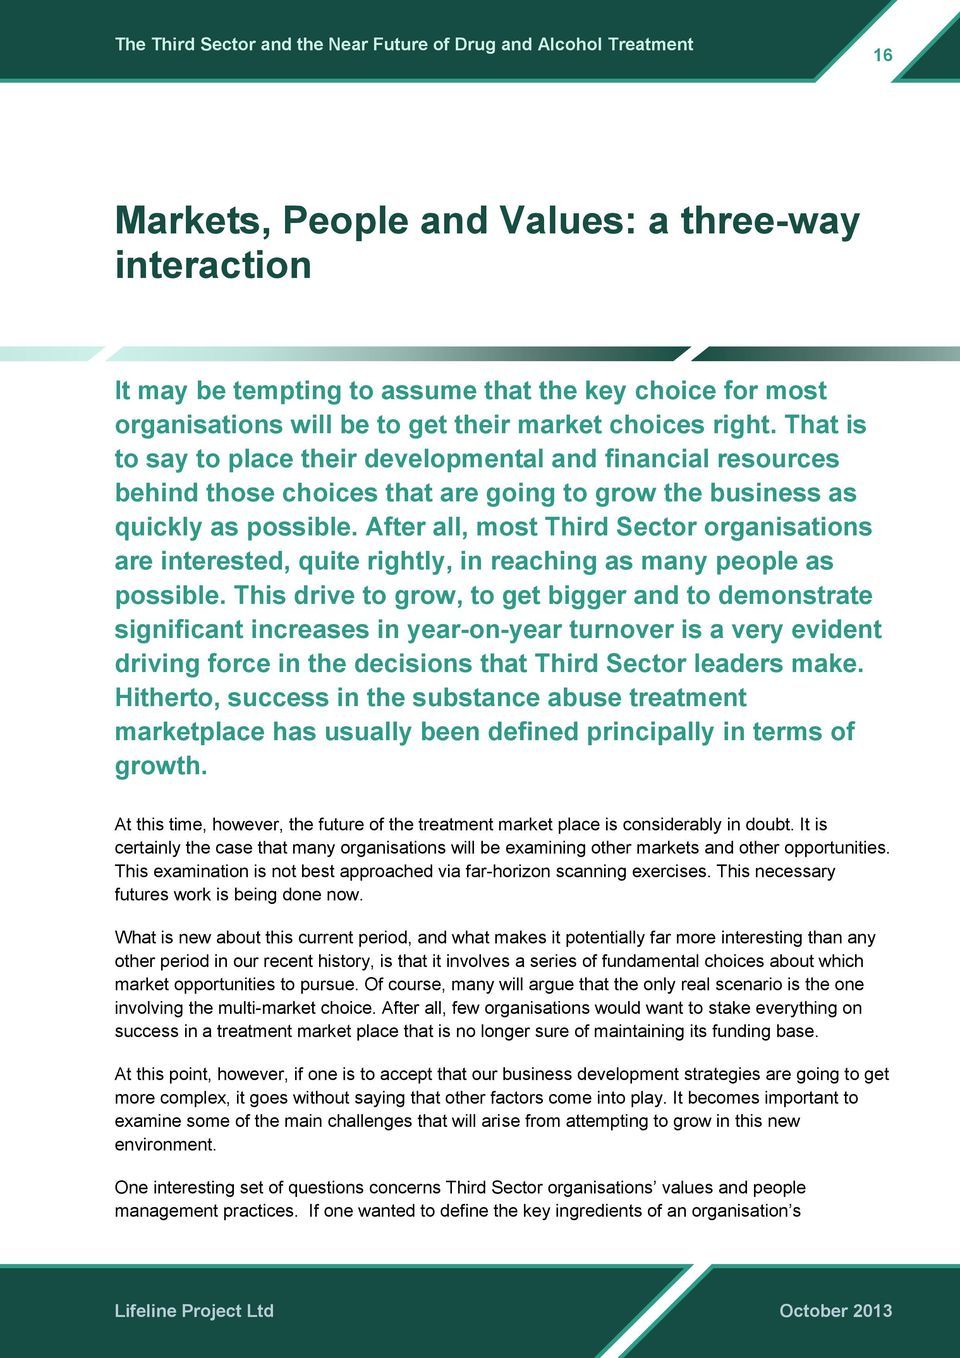 After all, most Third Sector organisations are interested, quite rightly, in reaching as many people as possible.